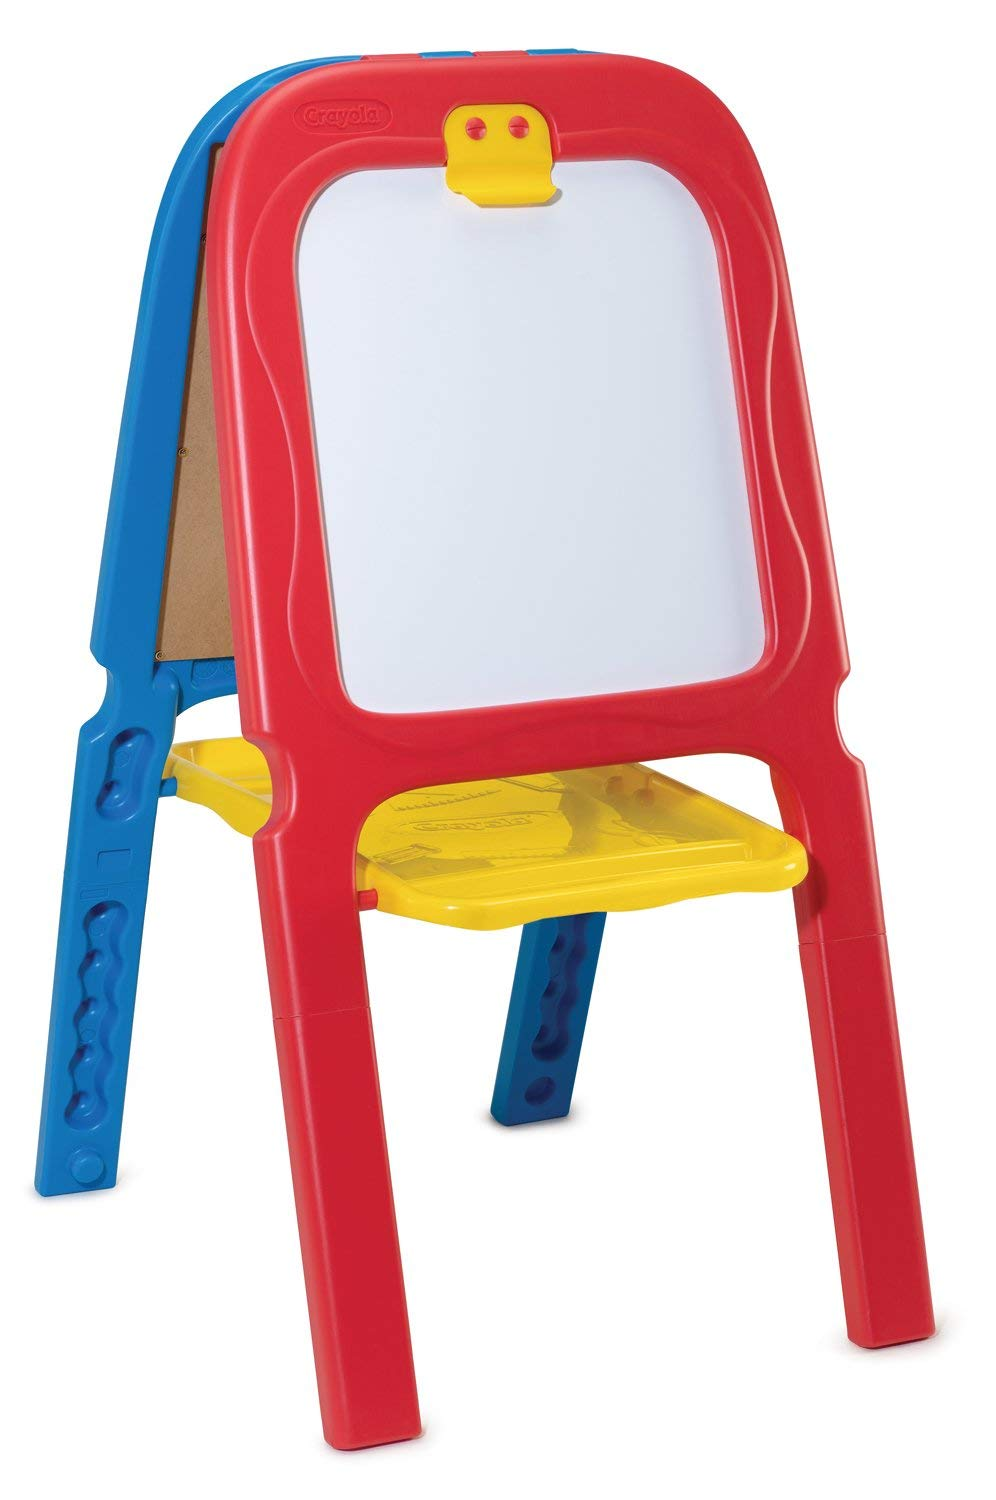 1) An Easel - Writing, drawing and playing on a vertical surface helps strengthen the shoulder and wrist muscles, and automatically positions the wrist in an extended position, which opens up the fingers. These are prerequisites for being able to maneuver writing tools appropriately.